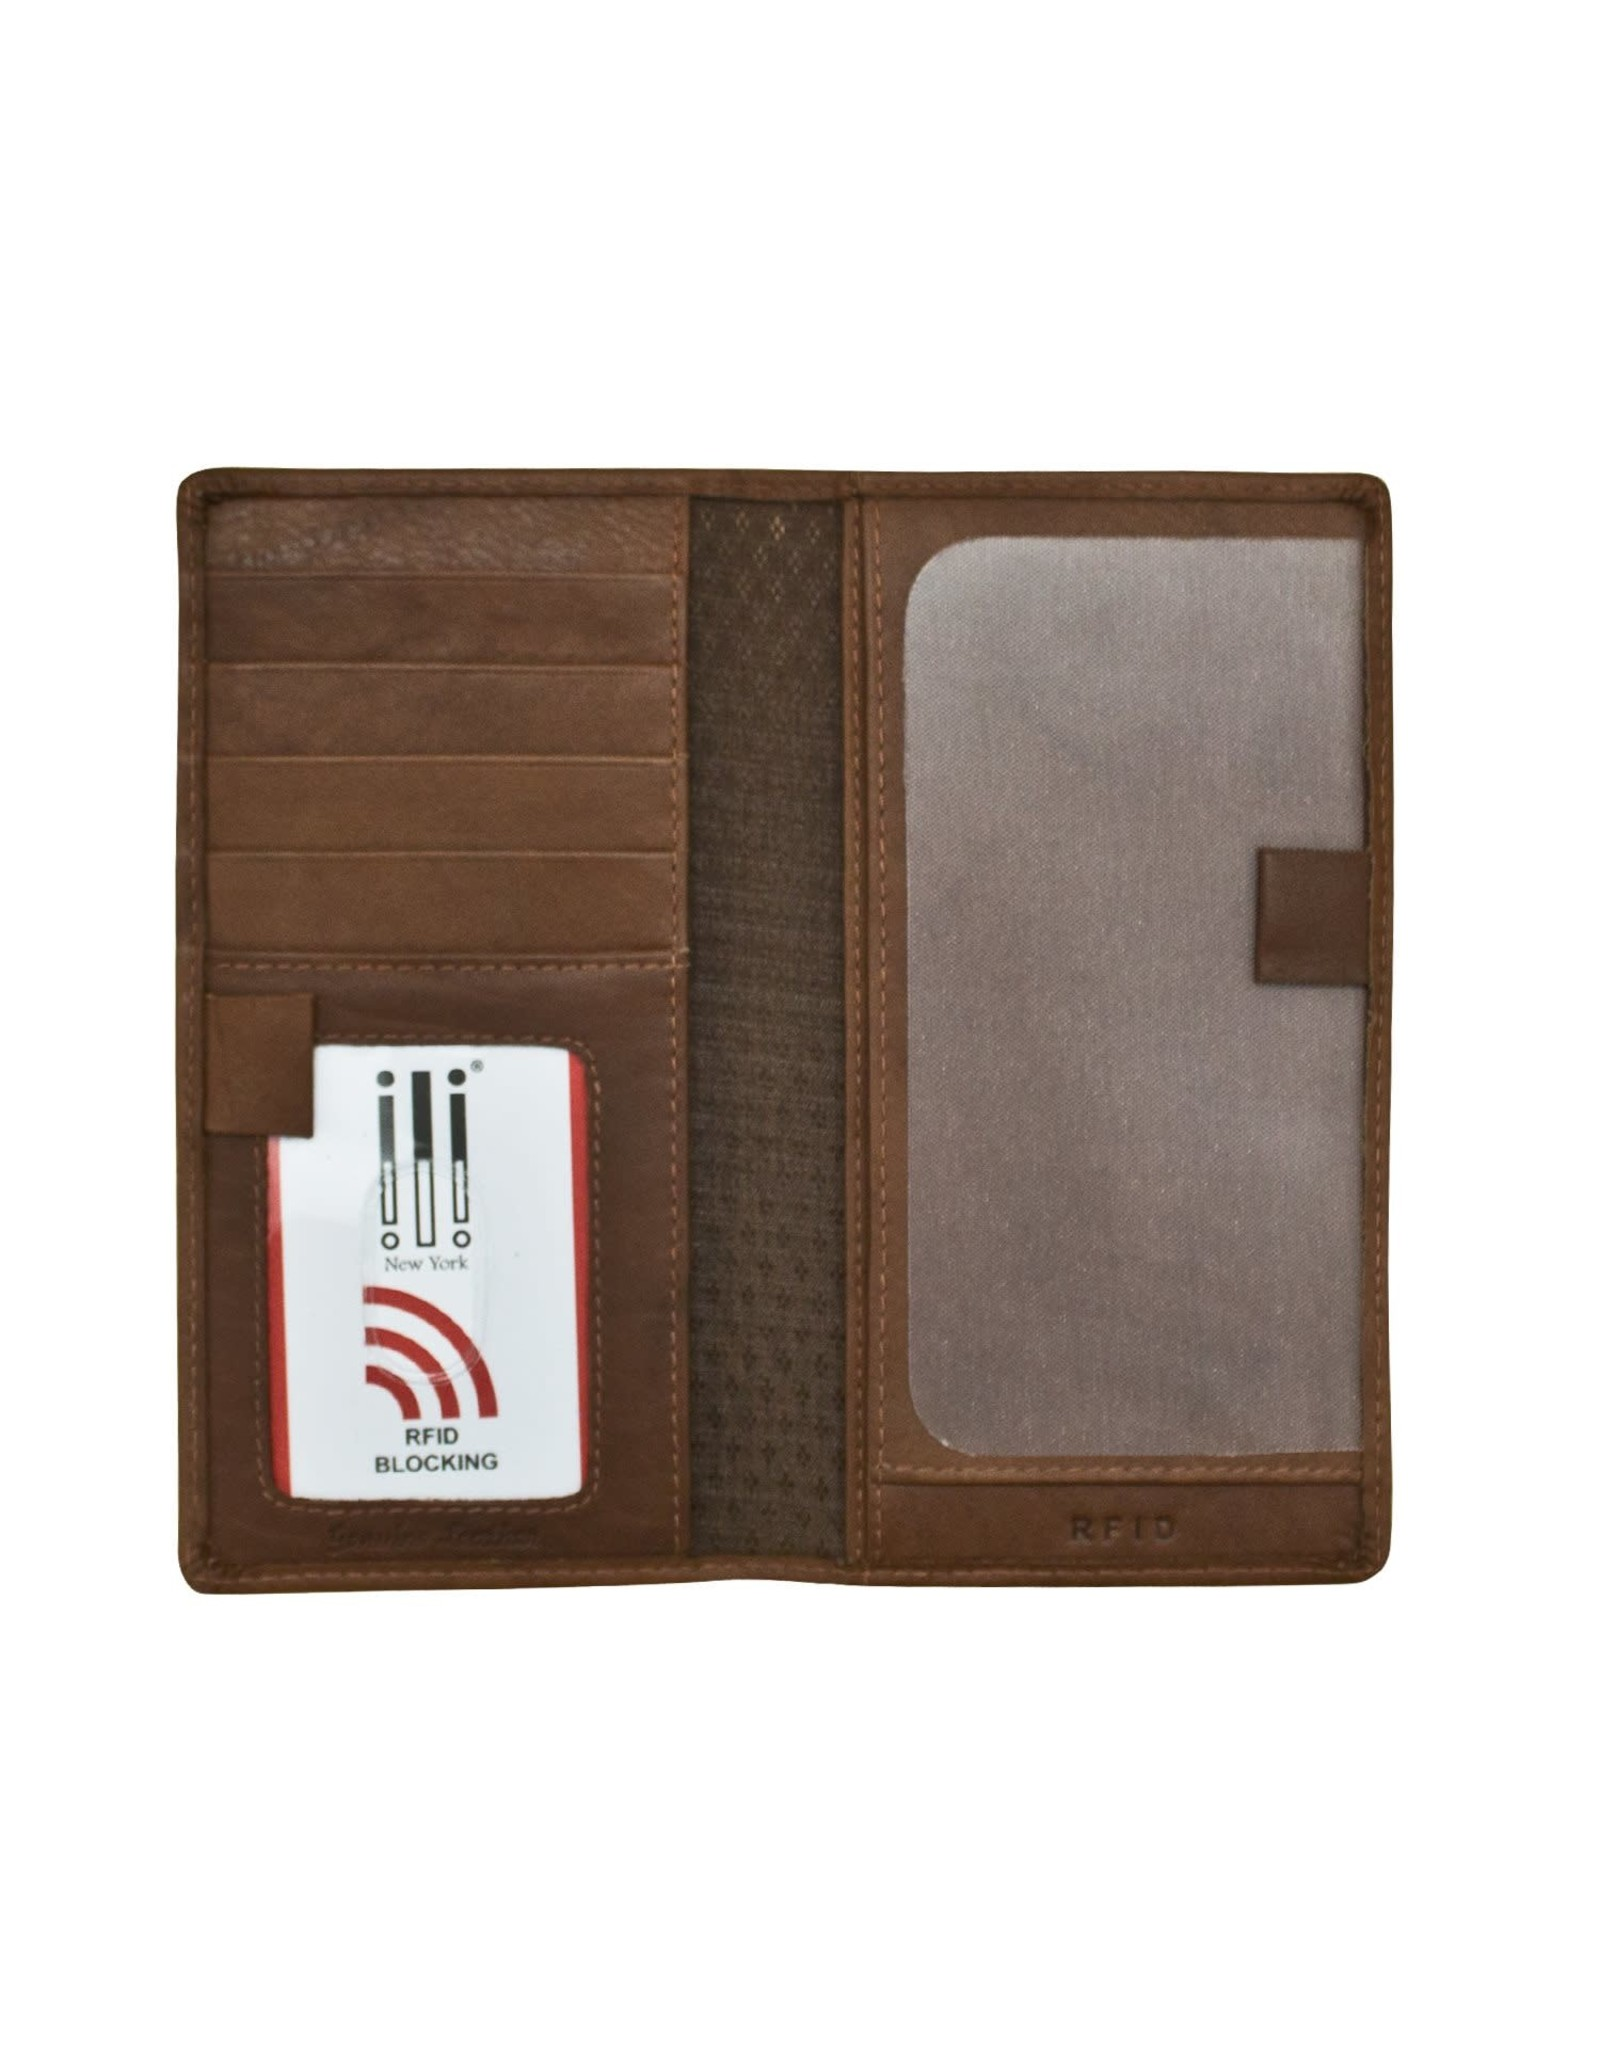 Leather Handbags and Accessories 7406 Toffee - RFID Checkbook Cover